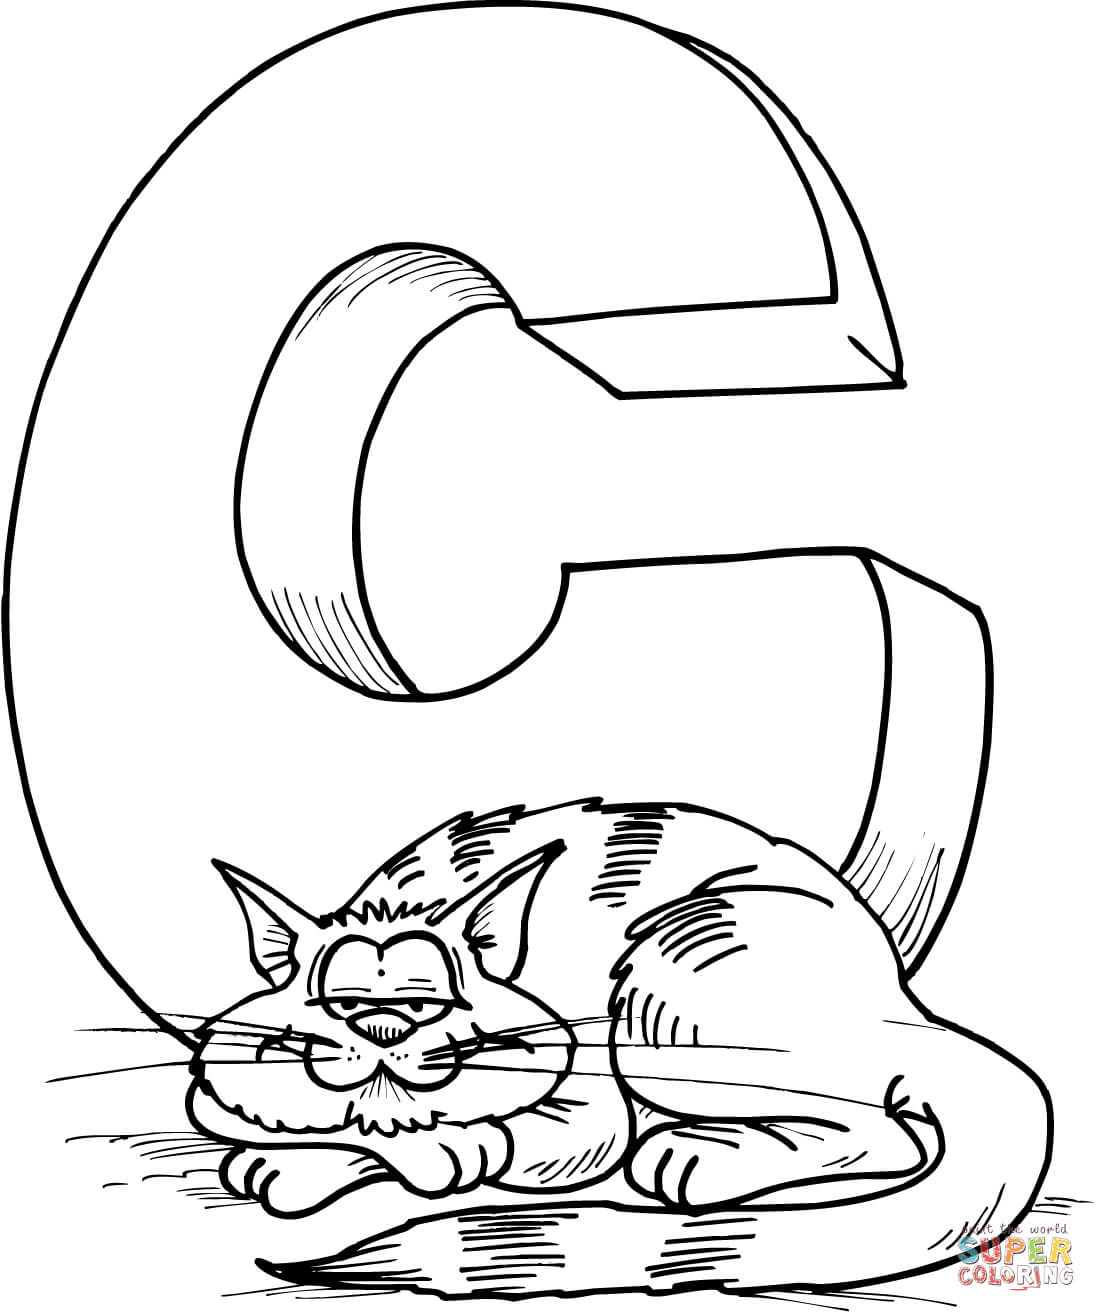 c for coloring free printable alphabet coloring pages for kids best c for coloring